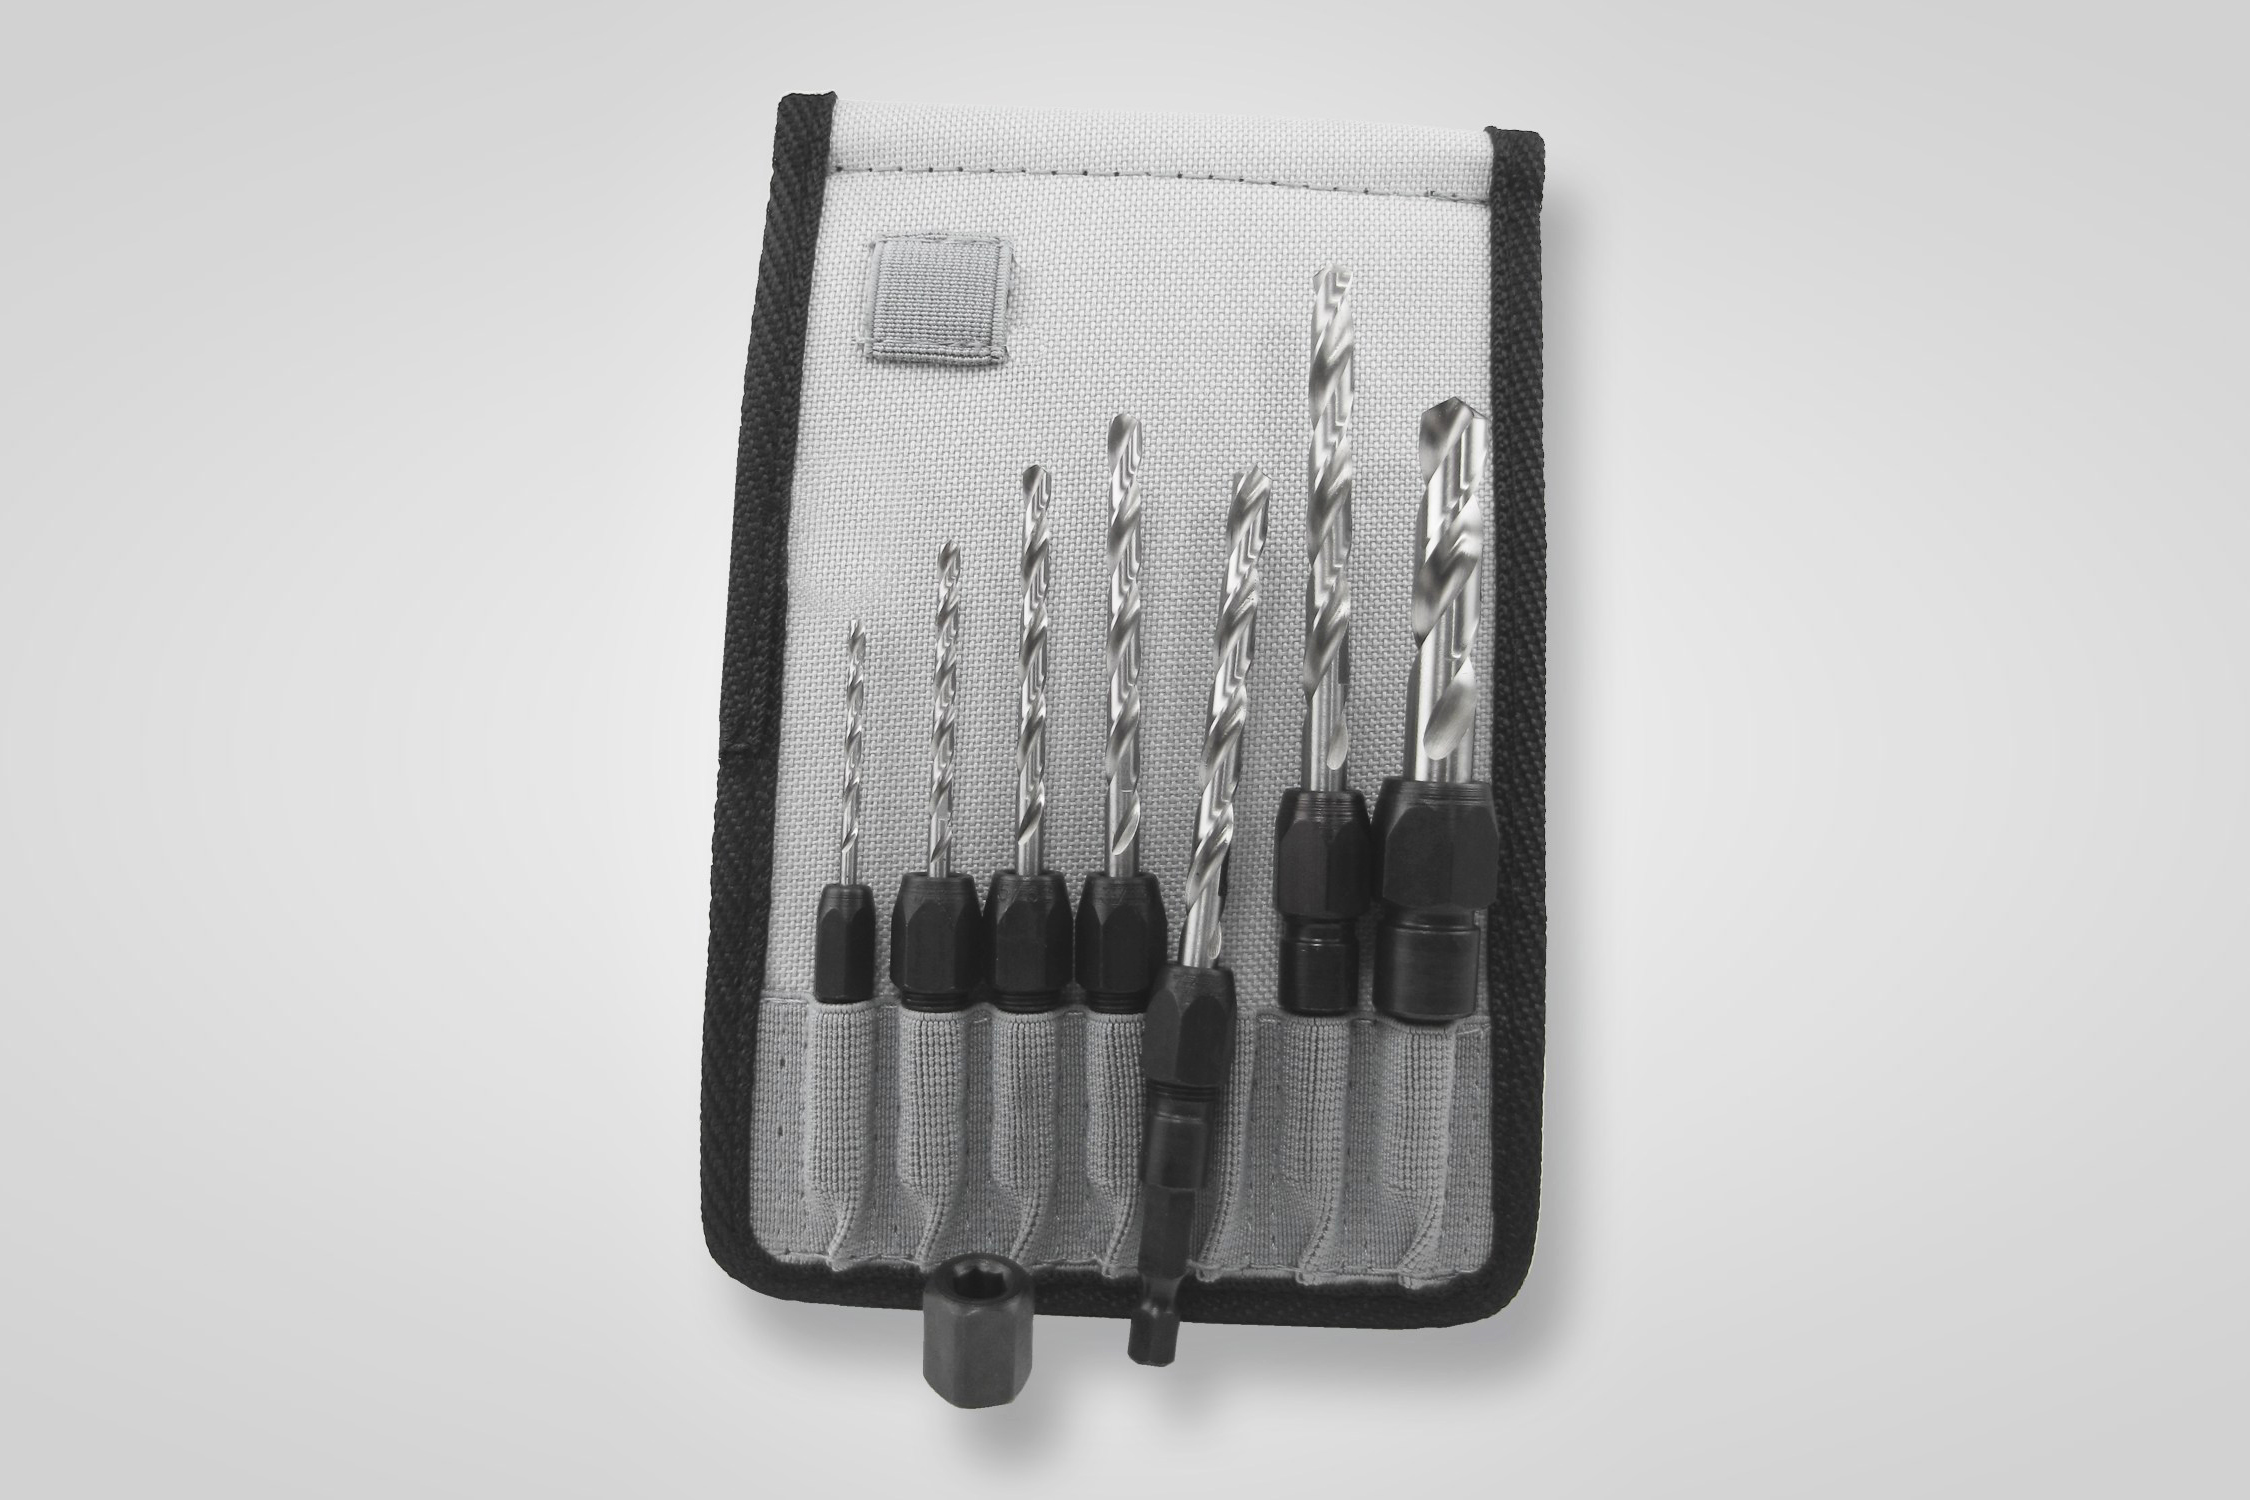 Snappy Tools 7 Piece Drill Bit Adapter Set in Belt Clip Pouch #47001